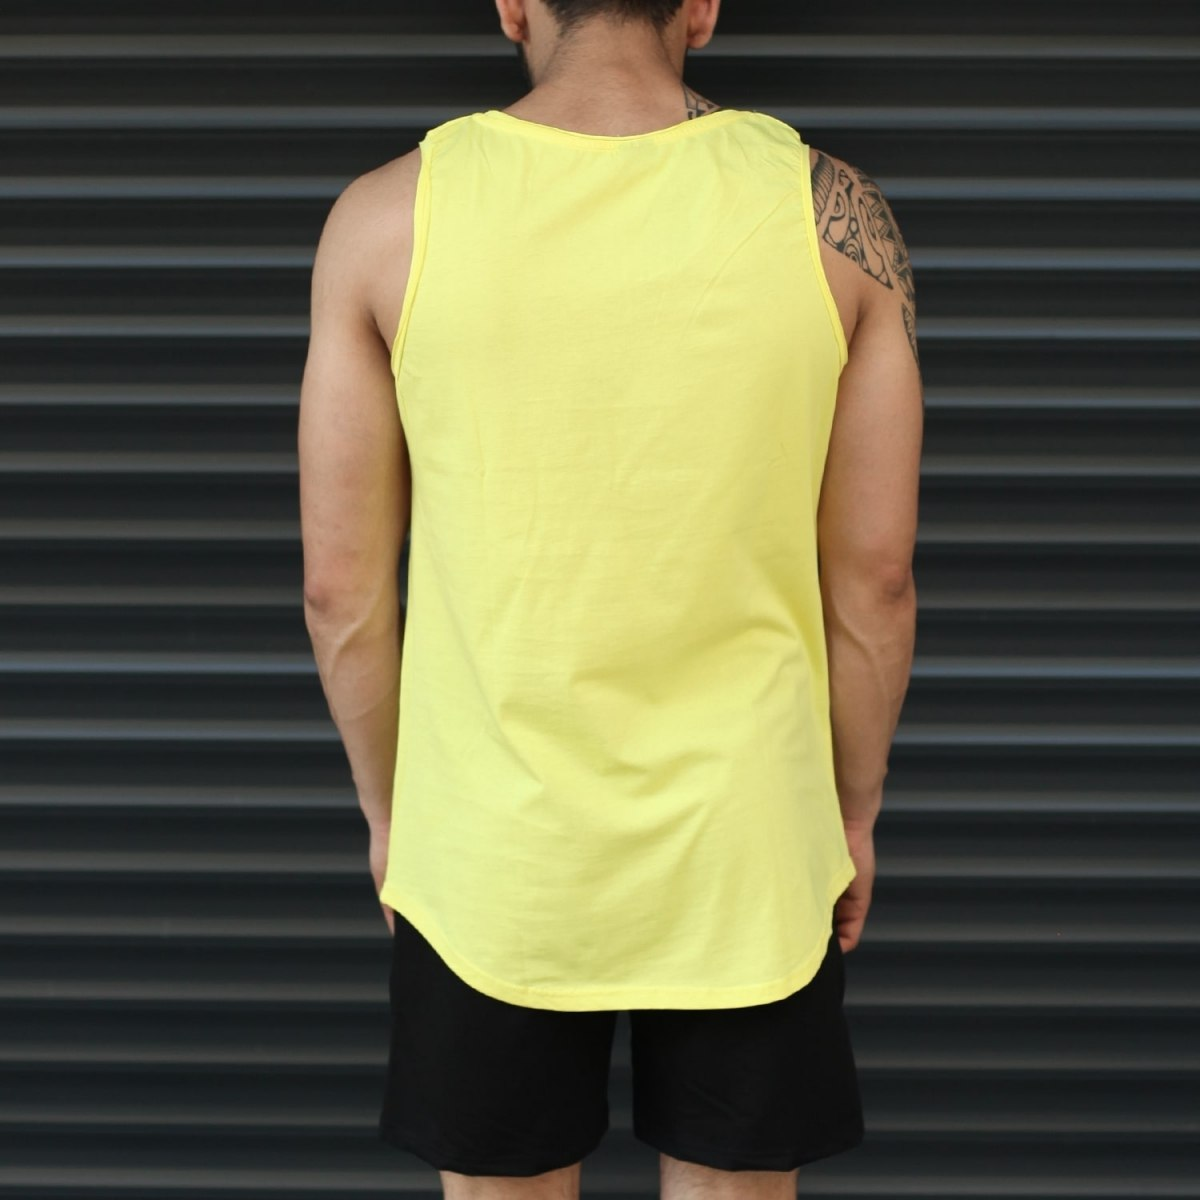 Men's Athletic Sleeveless Longline Tank Top Yellow Mv Premium Brand - 3